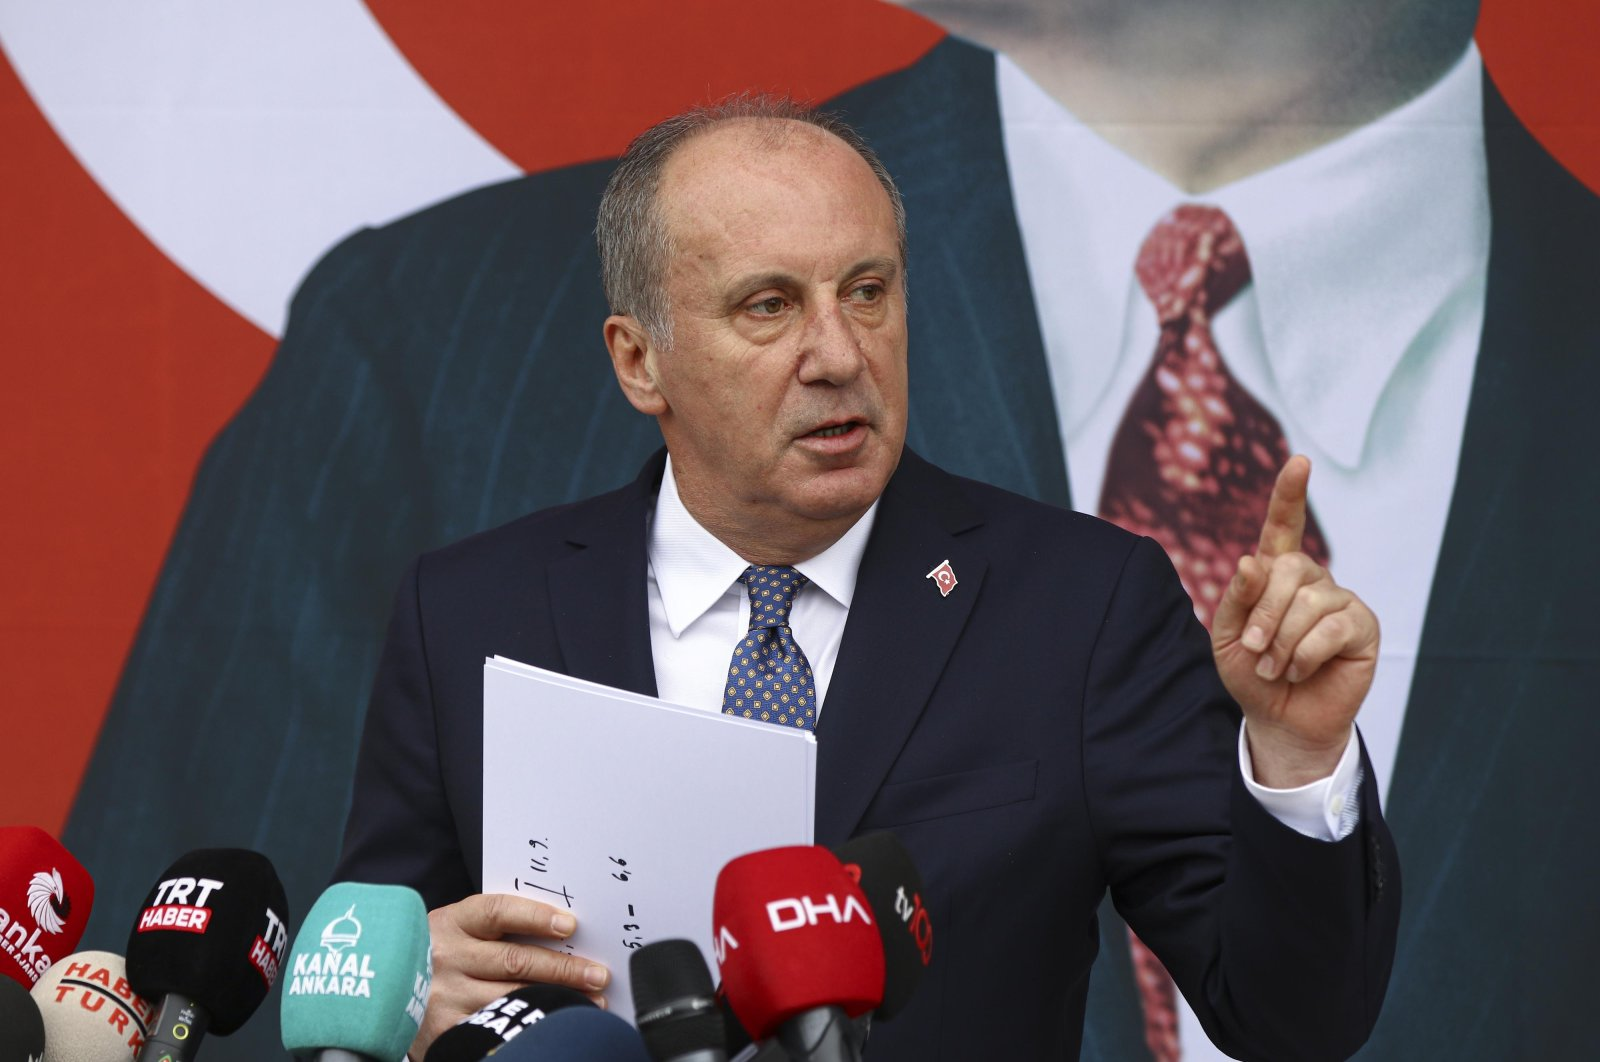 Muharrem Ince speaks at a press conference in the capital Ankara, Feb. 8, 2021. (DHA Photo)